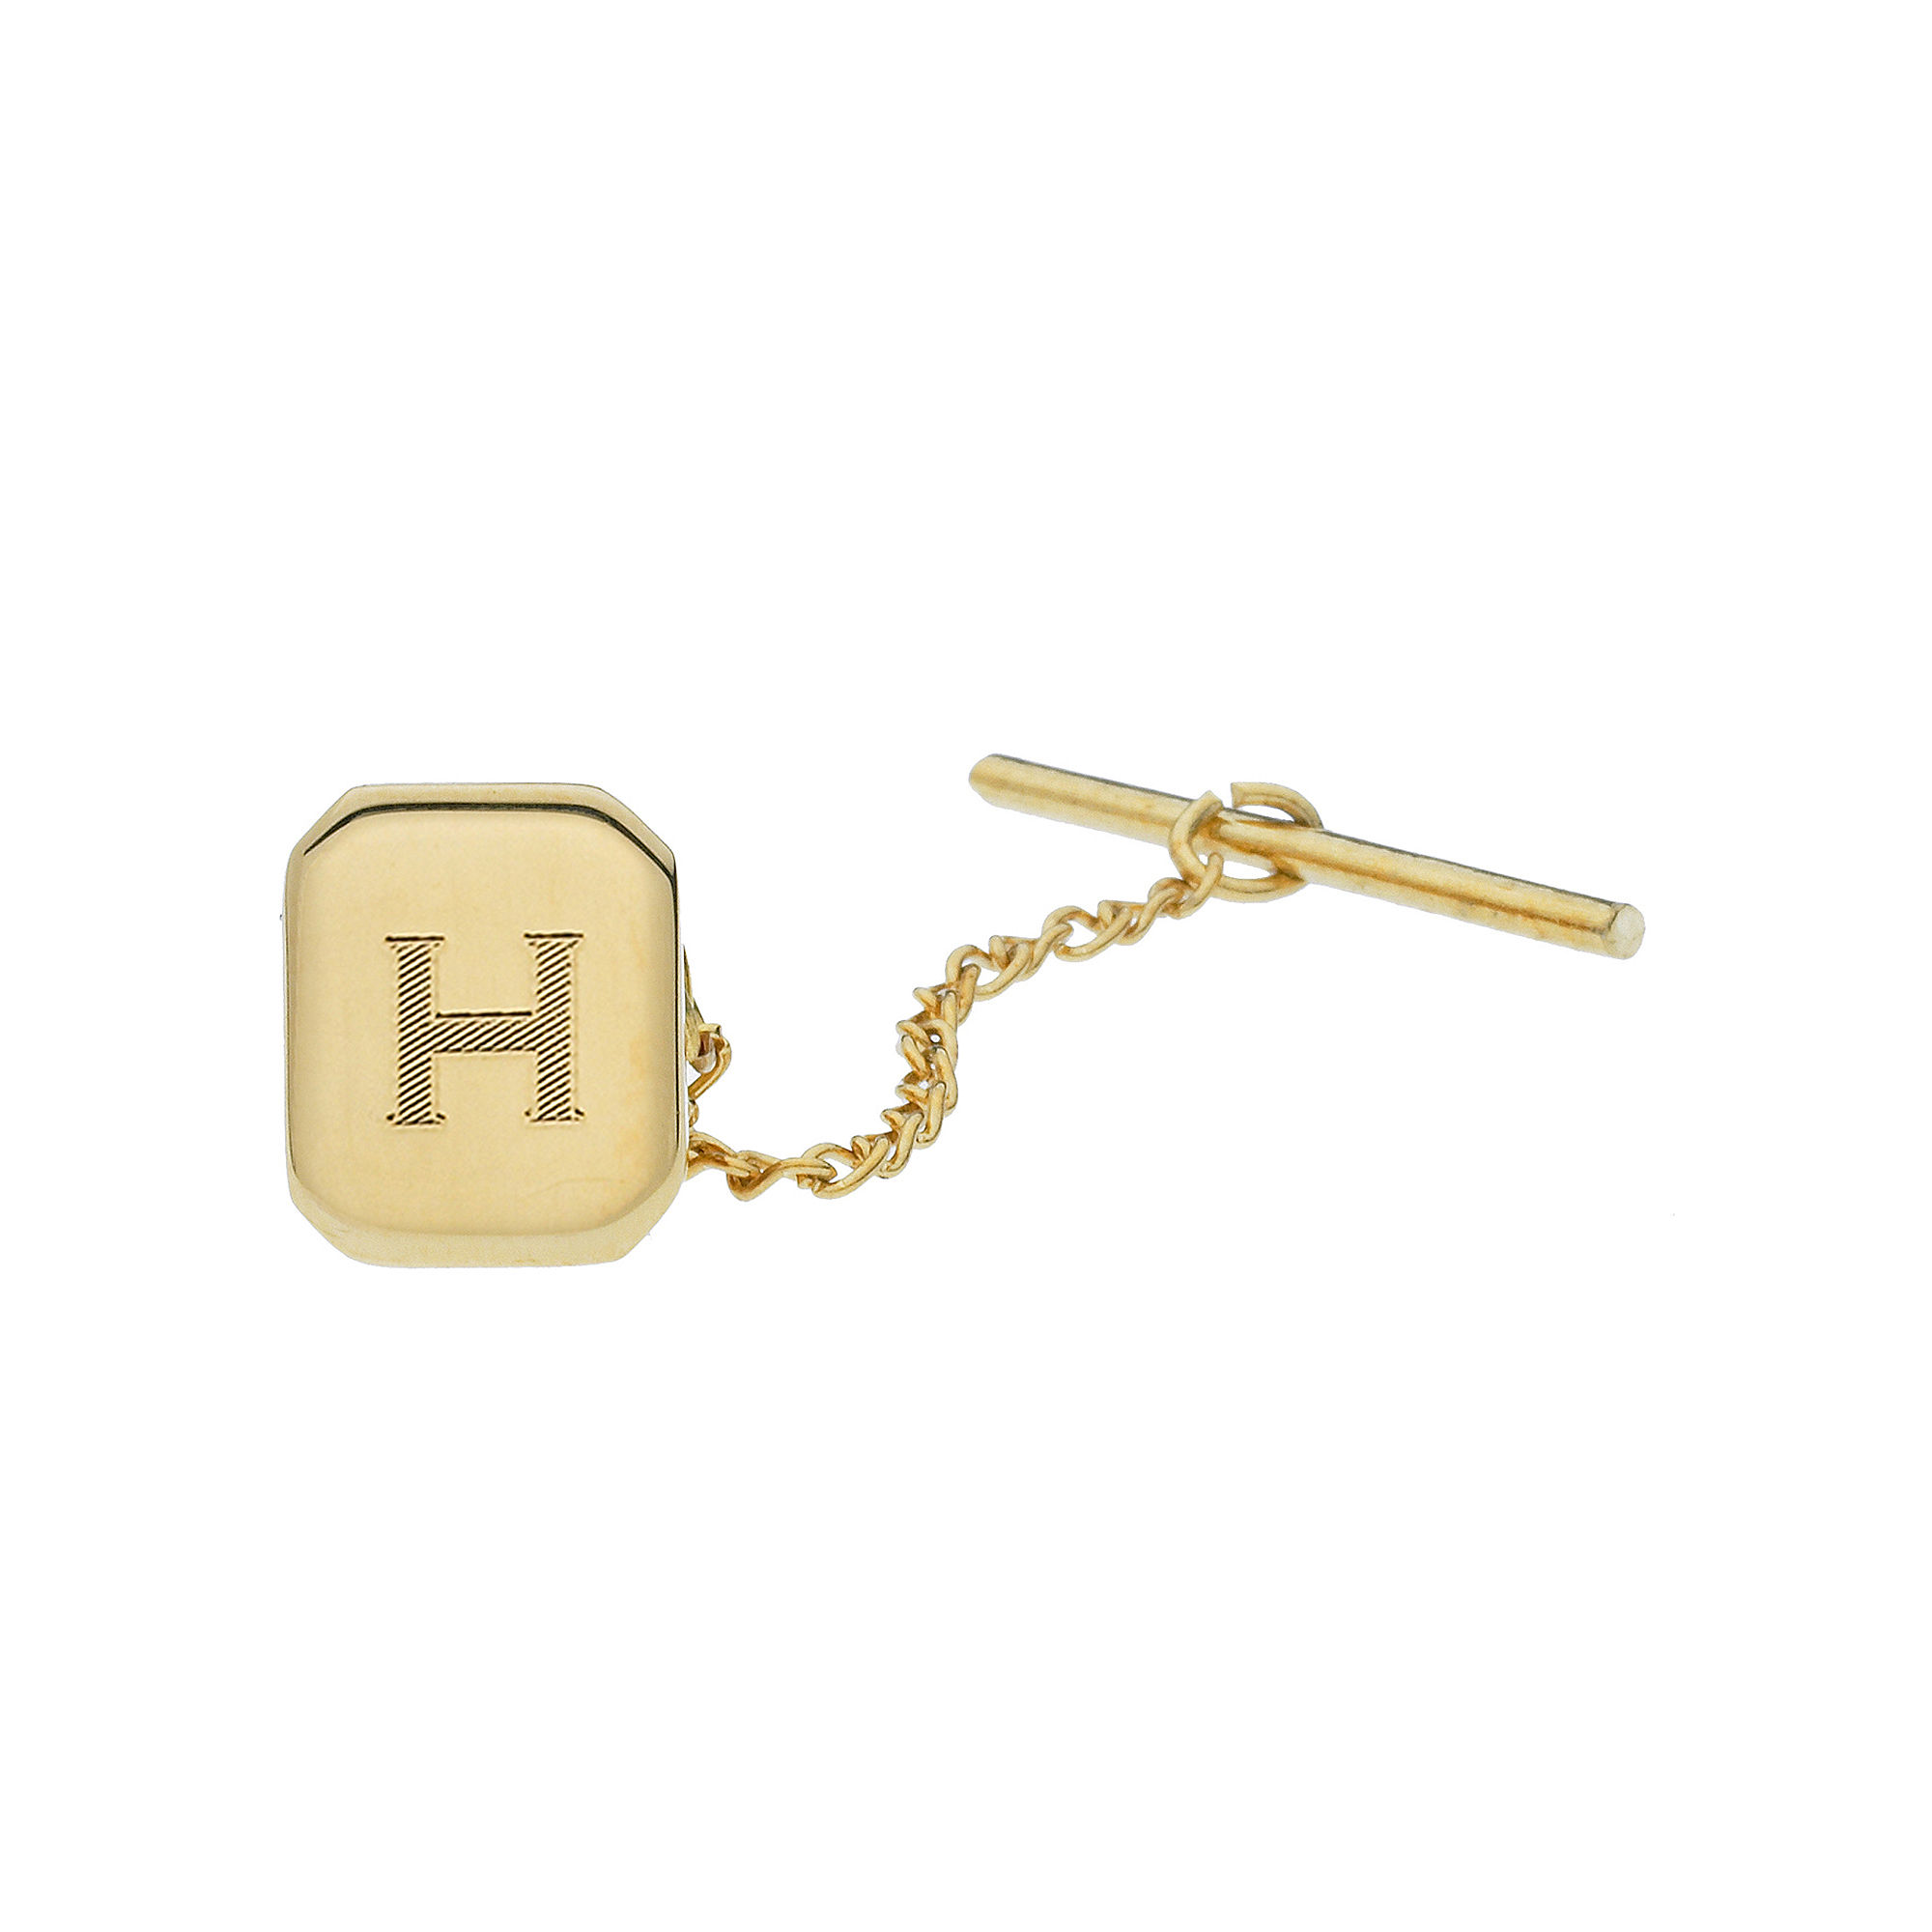 Personalized Gold-Toned Tie Tack